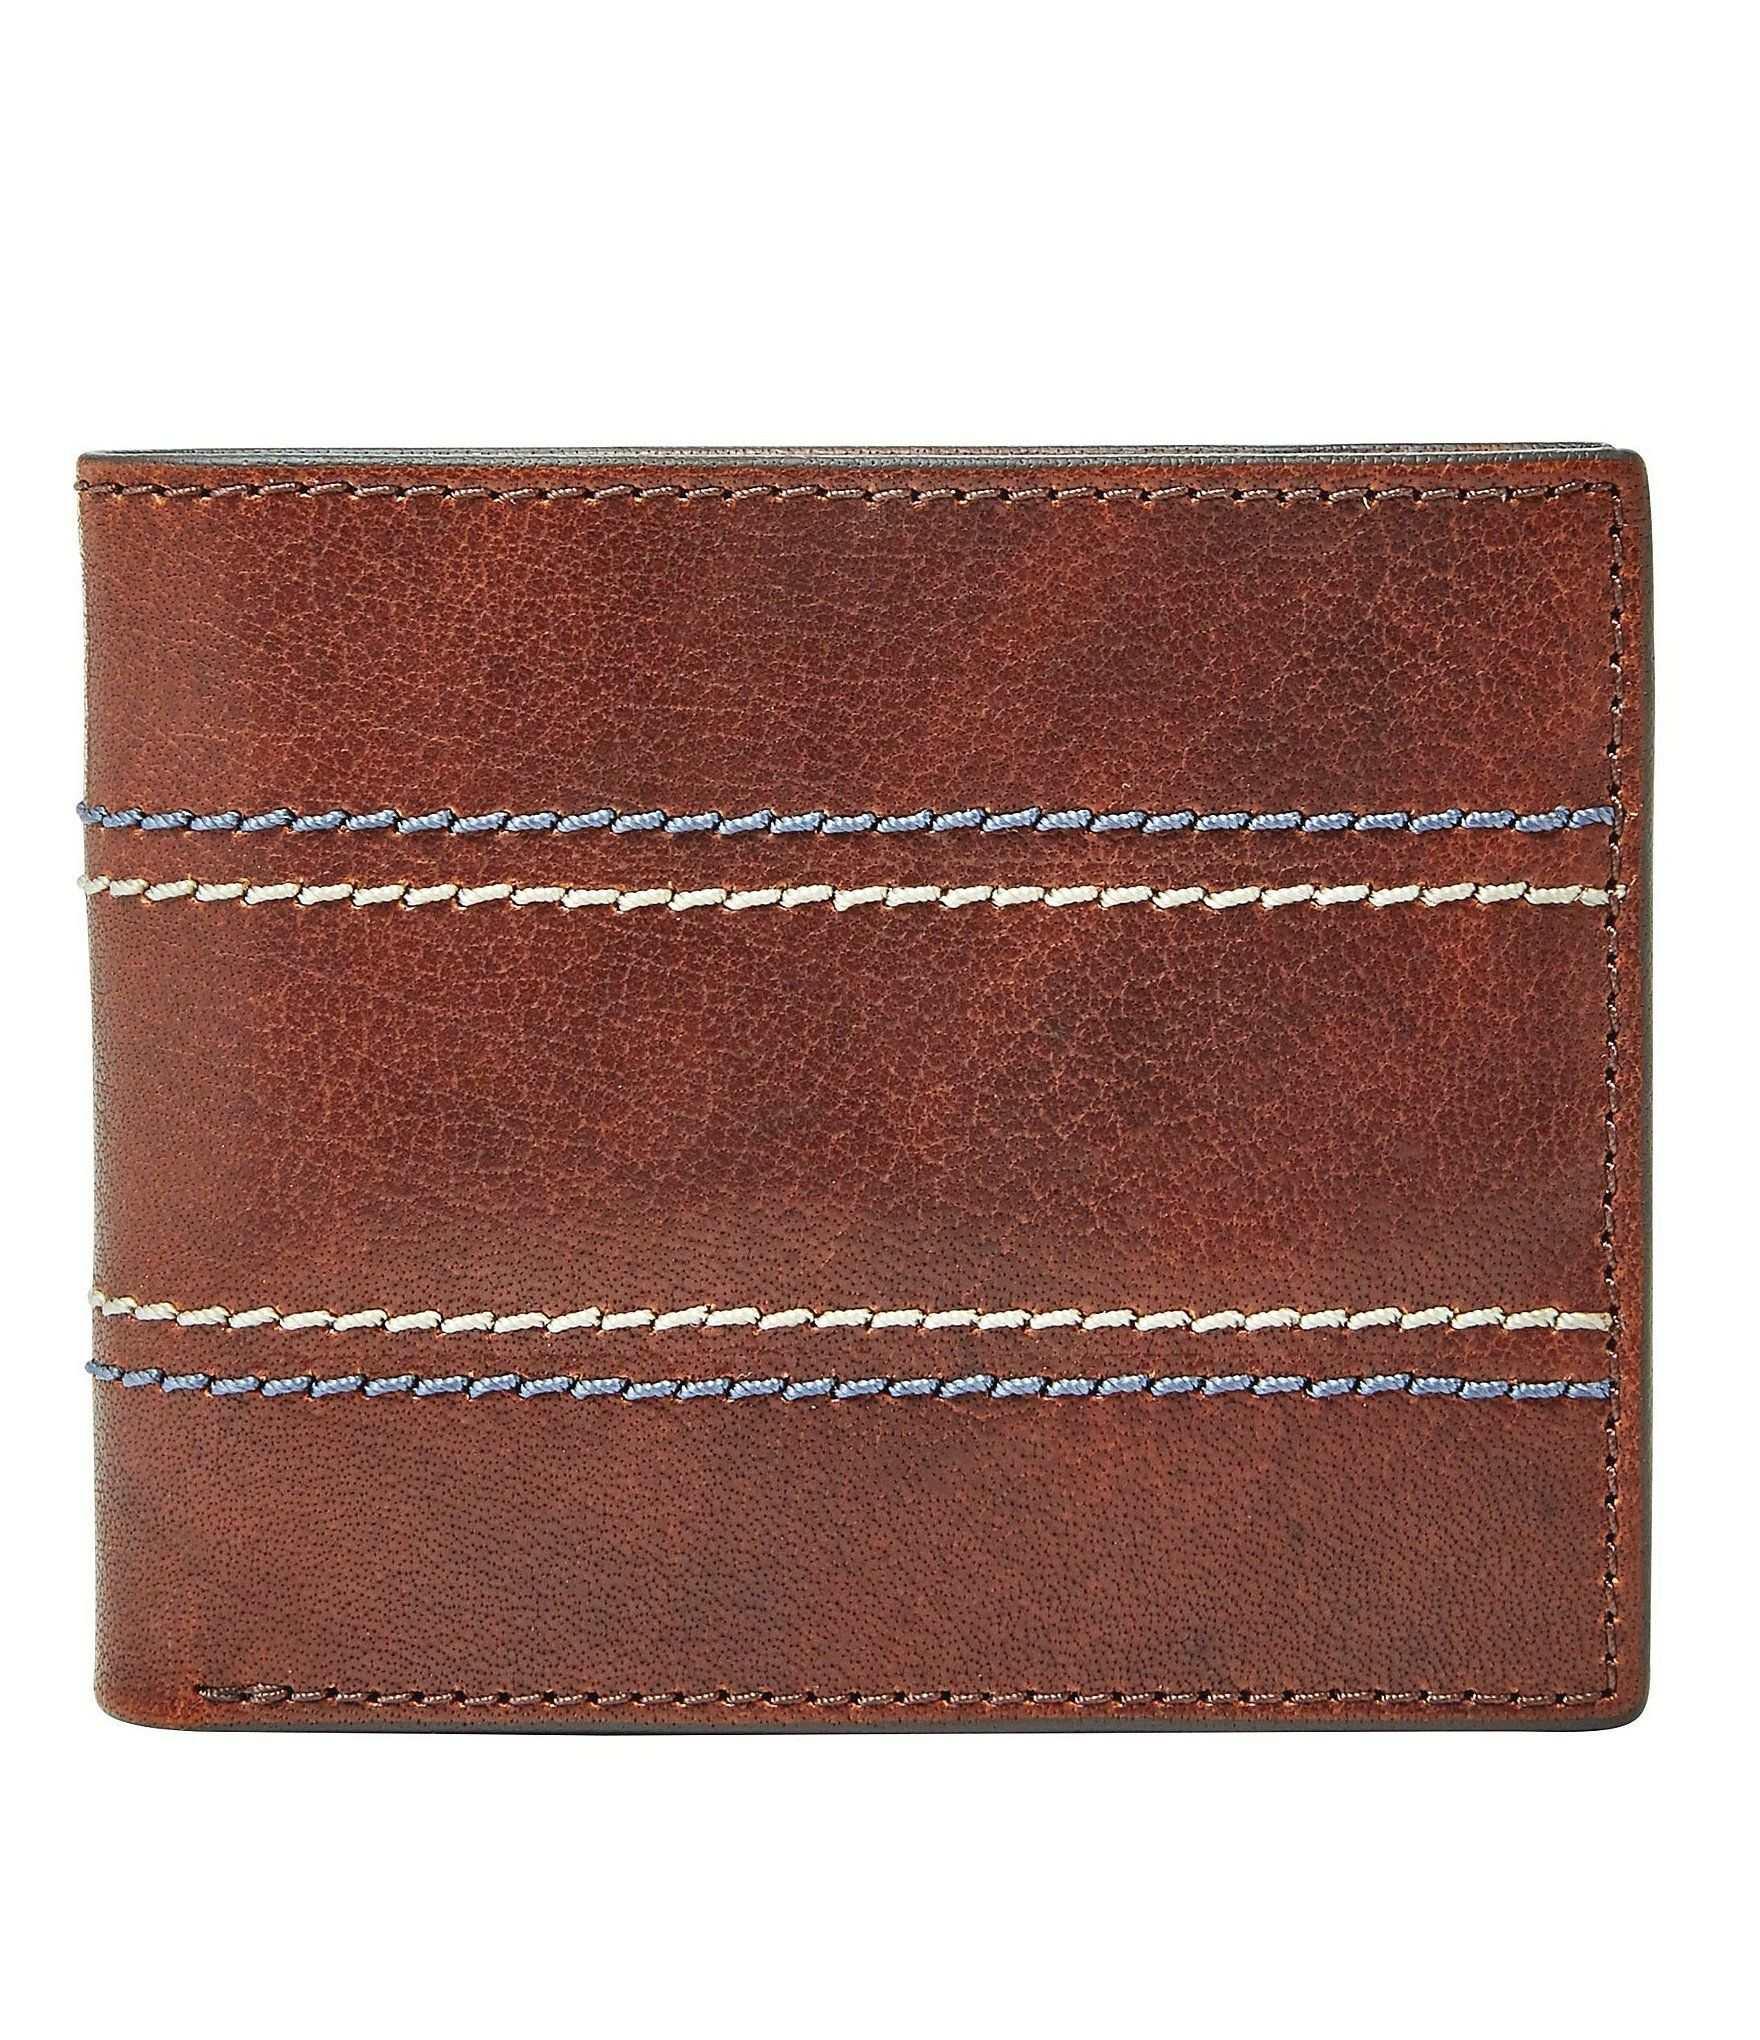 "From Fossil, this bifold flip ID wallet features:interior pockets: 8 credit card slots1 billfold pocket2 slide pockets2 ID windowsRFID-blocking liningleathersize: 4.25""' L x 3.50""""W x 0.6""""HImported."